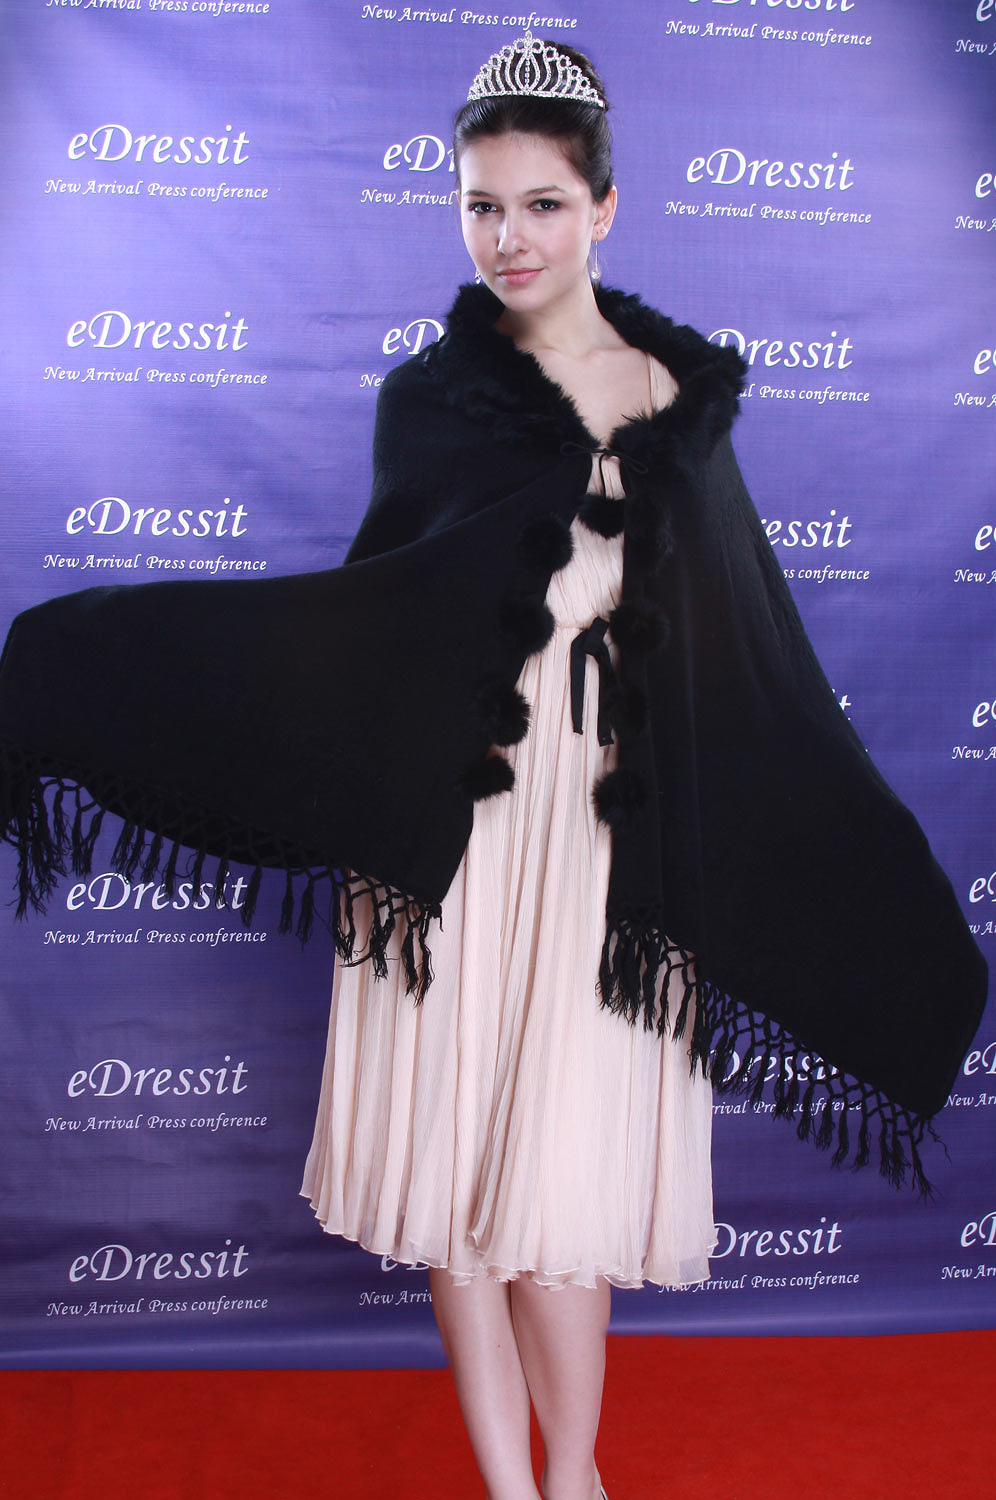 eDressit Black Shawl/Wrapa/Bolero (14090100)